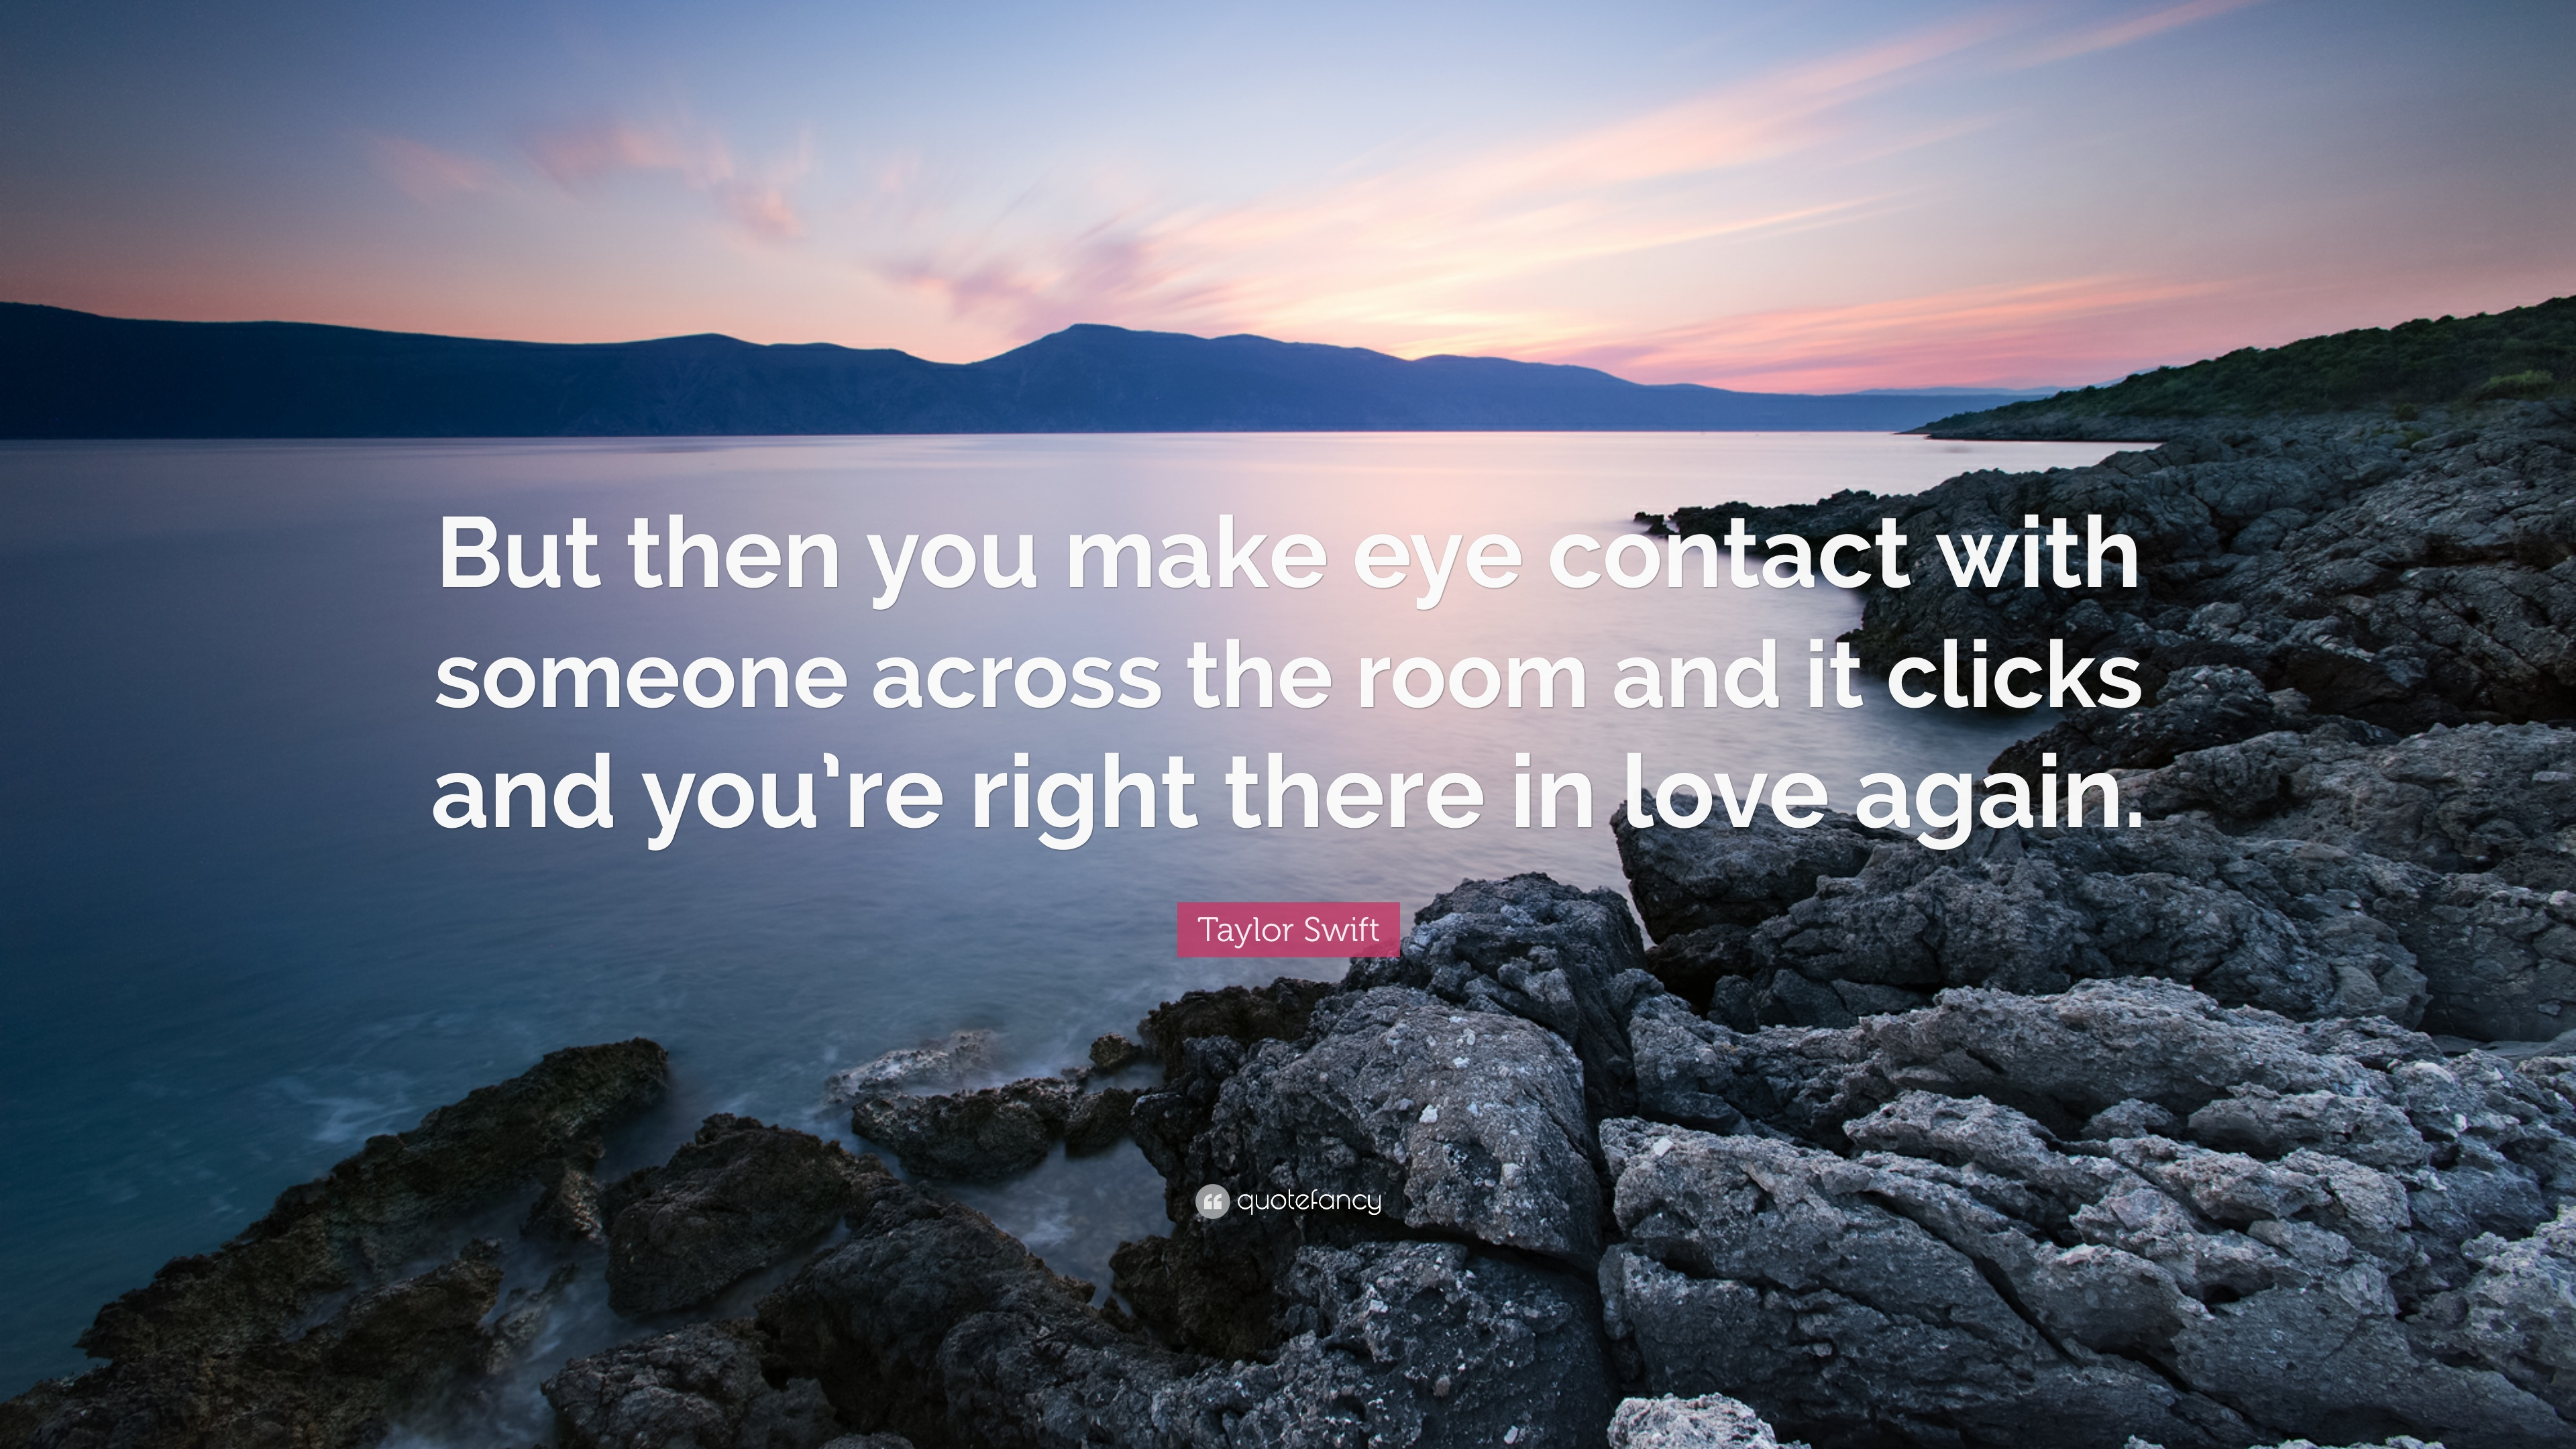 Taylor Swift Quote But Then You Make Eye Contact With Someone Across The Room And It Clicks And You Re Right There In Love Again 7 Wallpapers Quotefancy